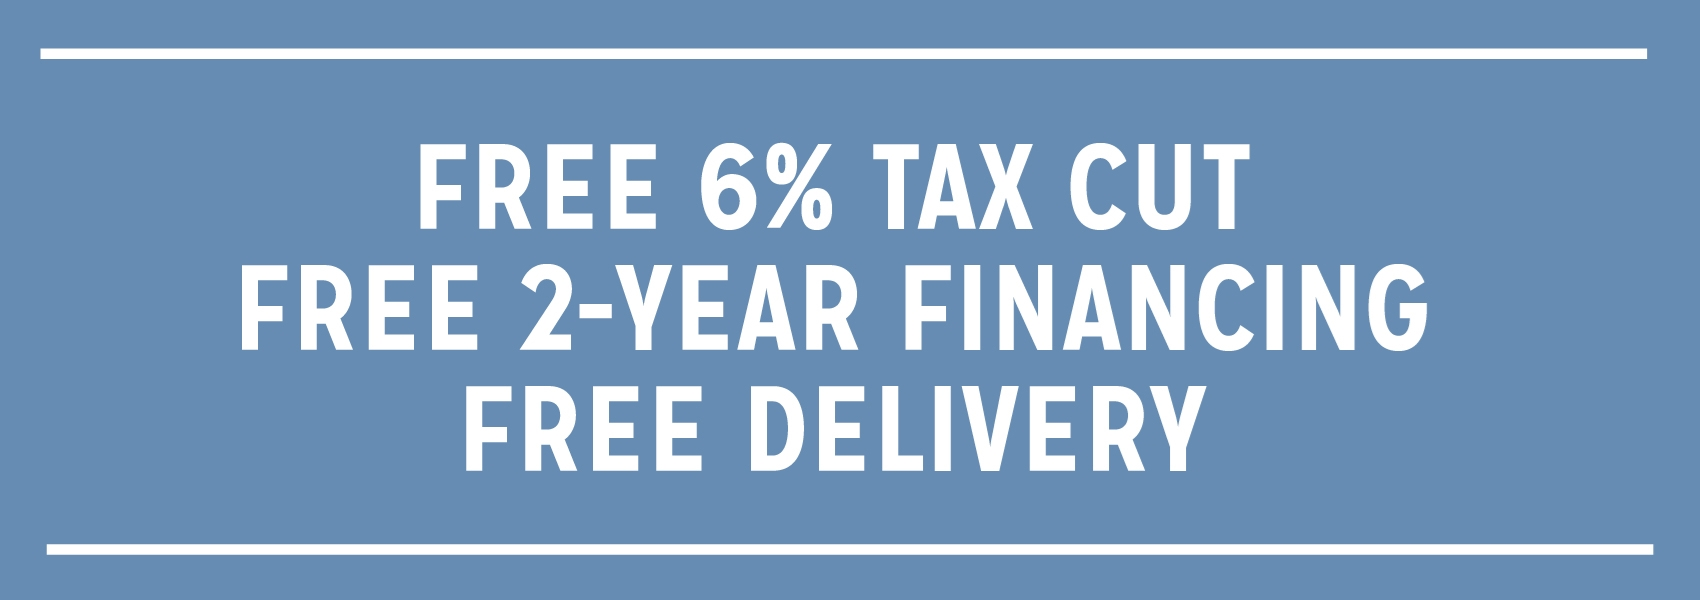 Free 6% Tax Cut, Free 2-Year Financing, Free Delivery!